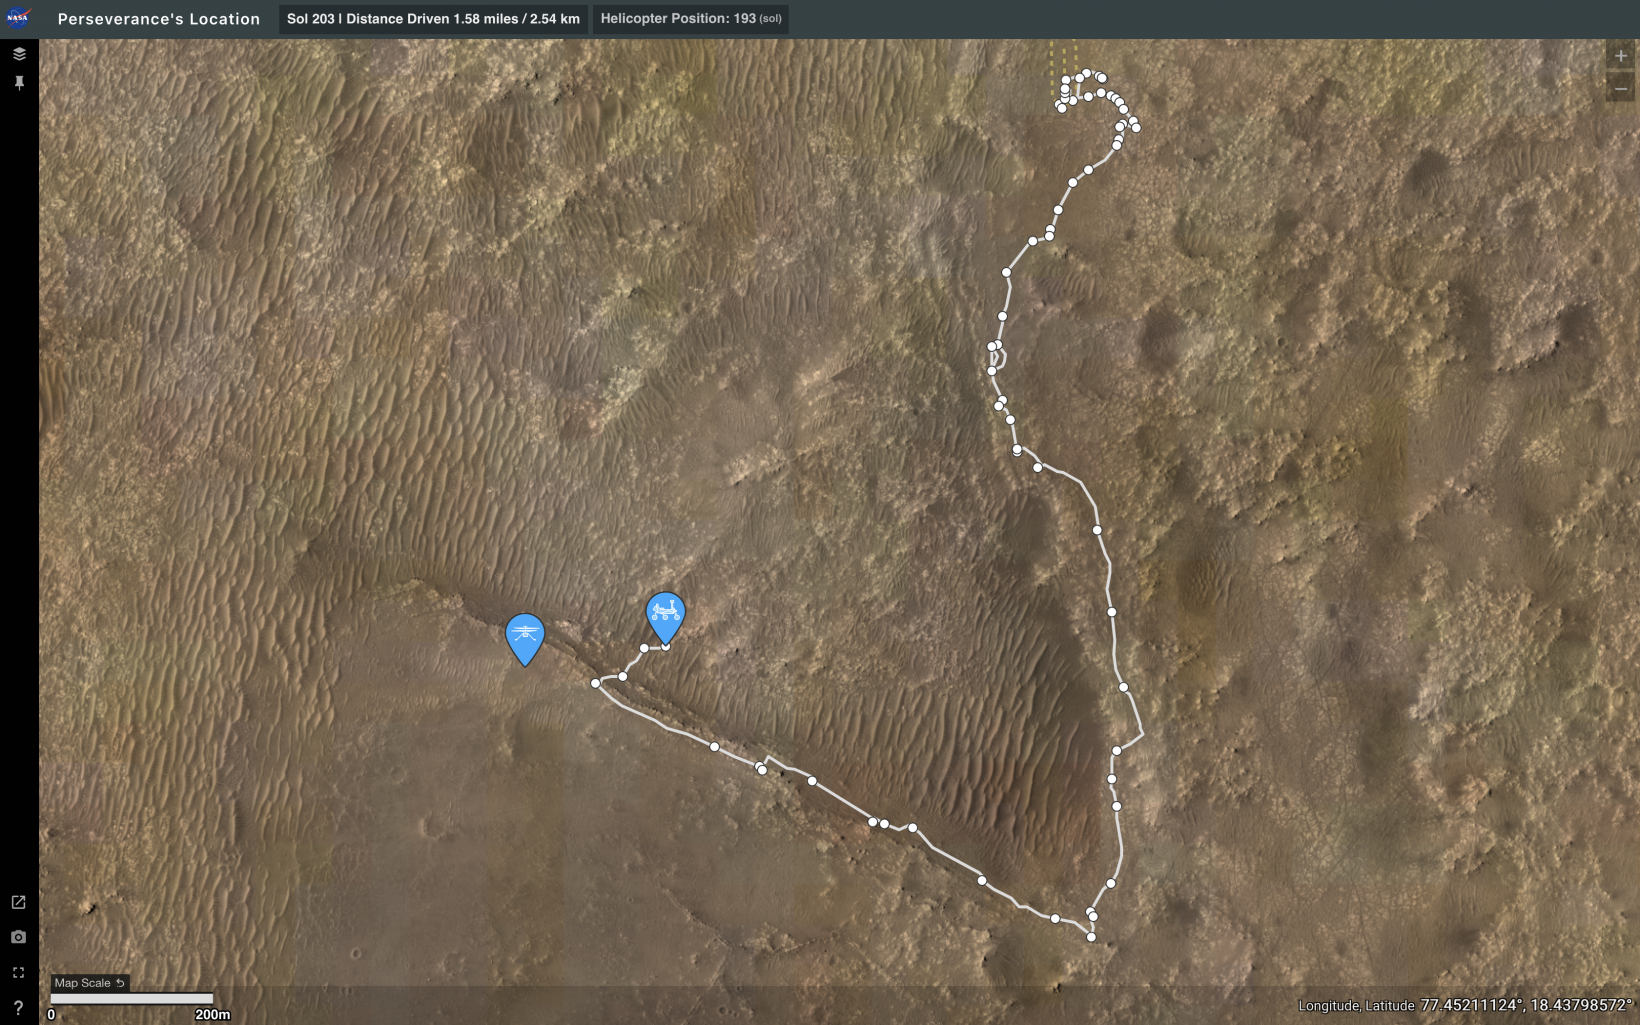 """You can track the Perseverance rover's daily location using """"Where is Perseverance?"""""""